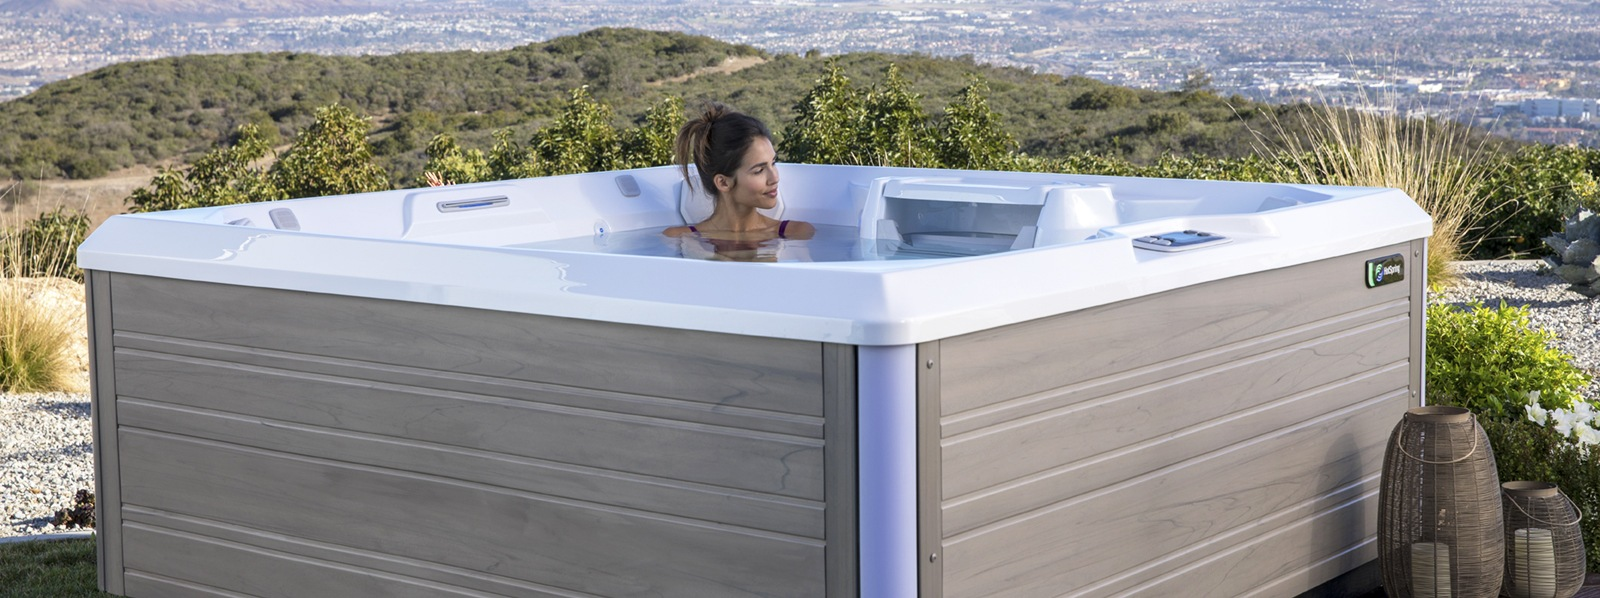 Jacuzzi Pool Dimensions Beam Hot Spring Spas